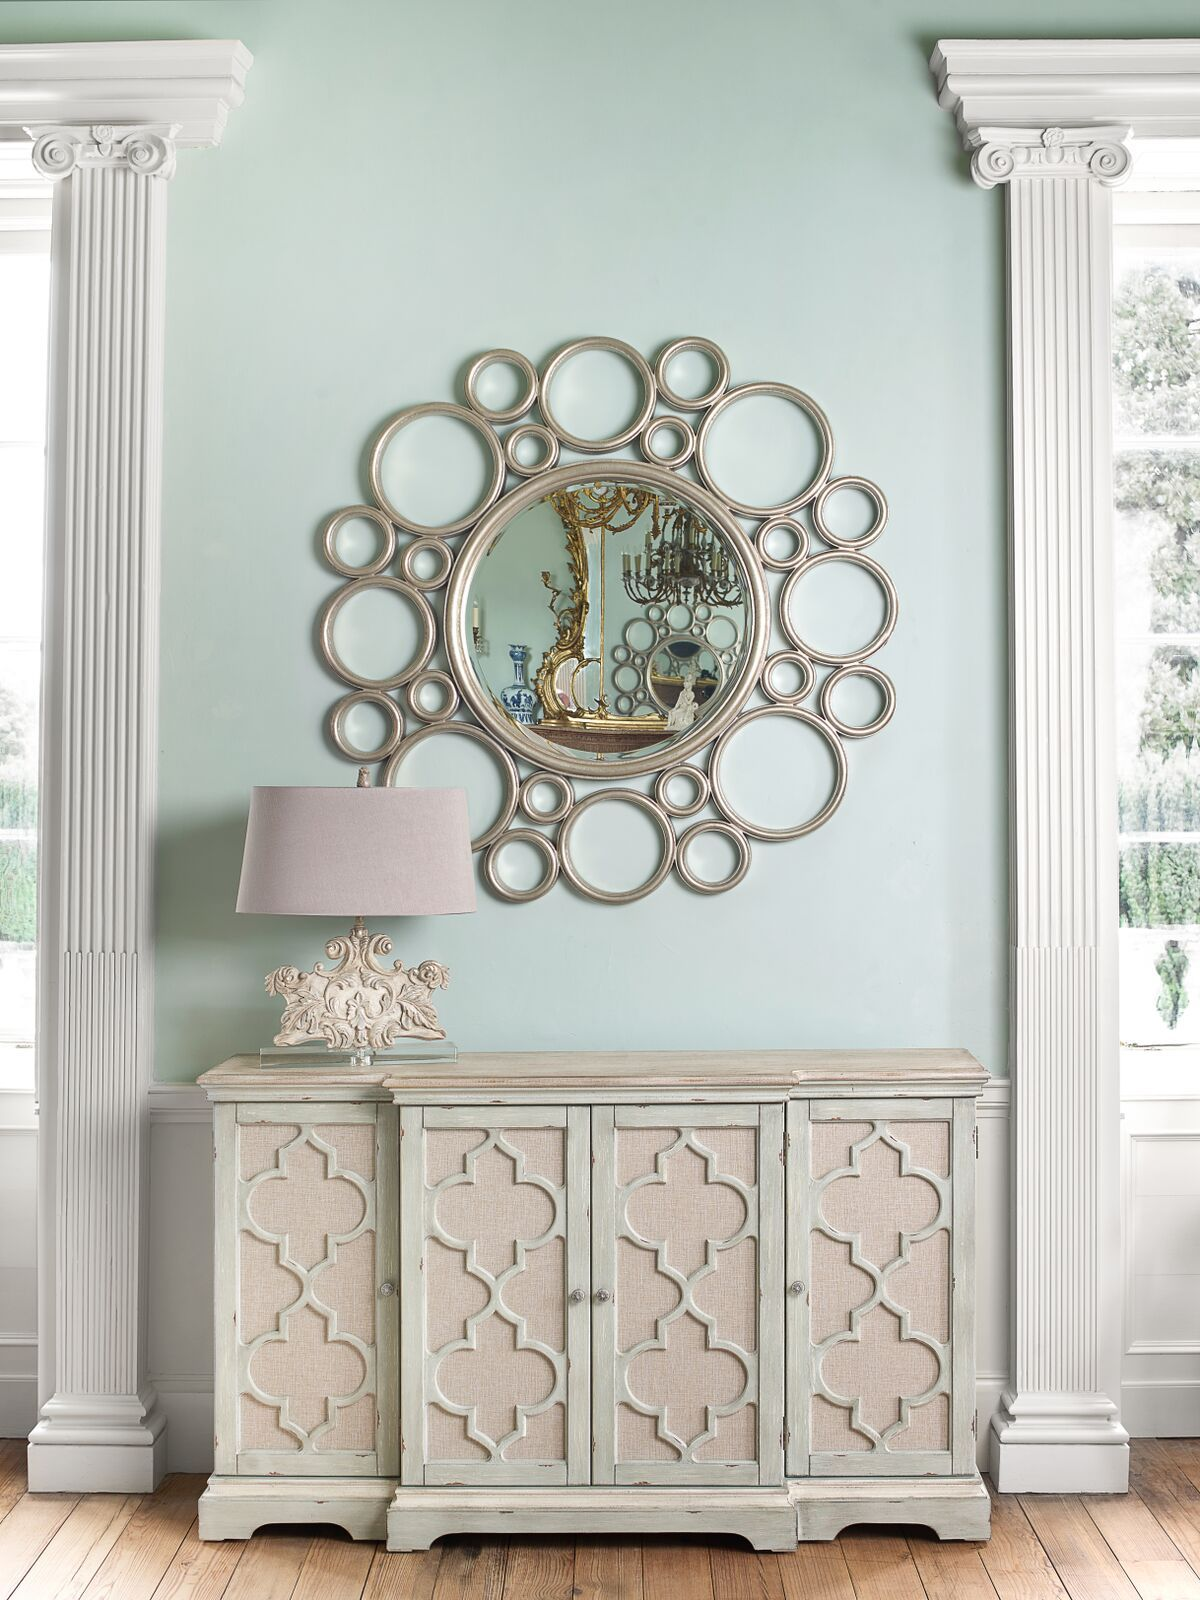 We love mirrors here at Mindy Brownes. Browse our